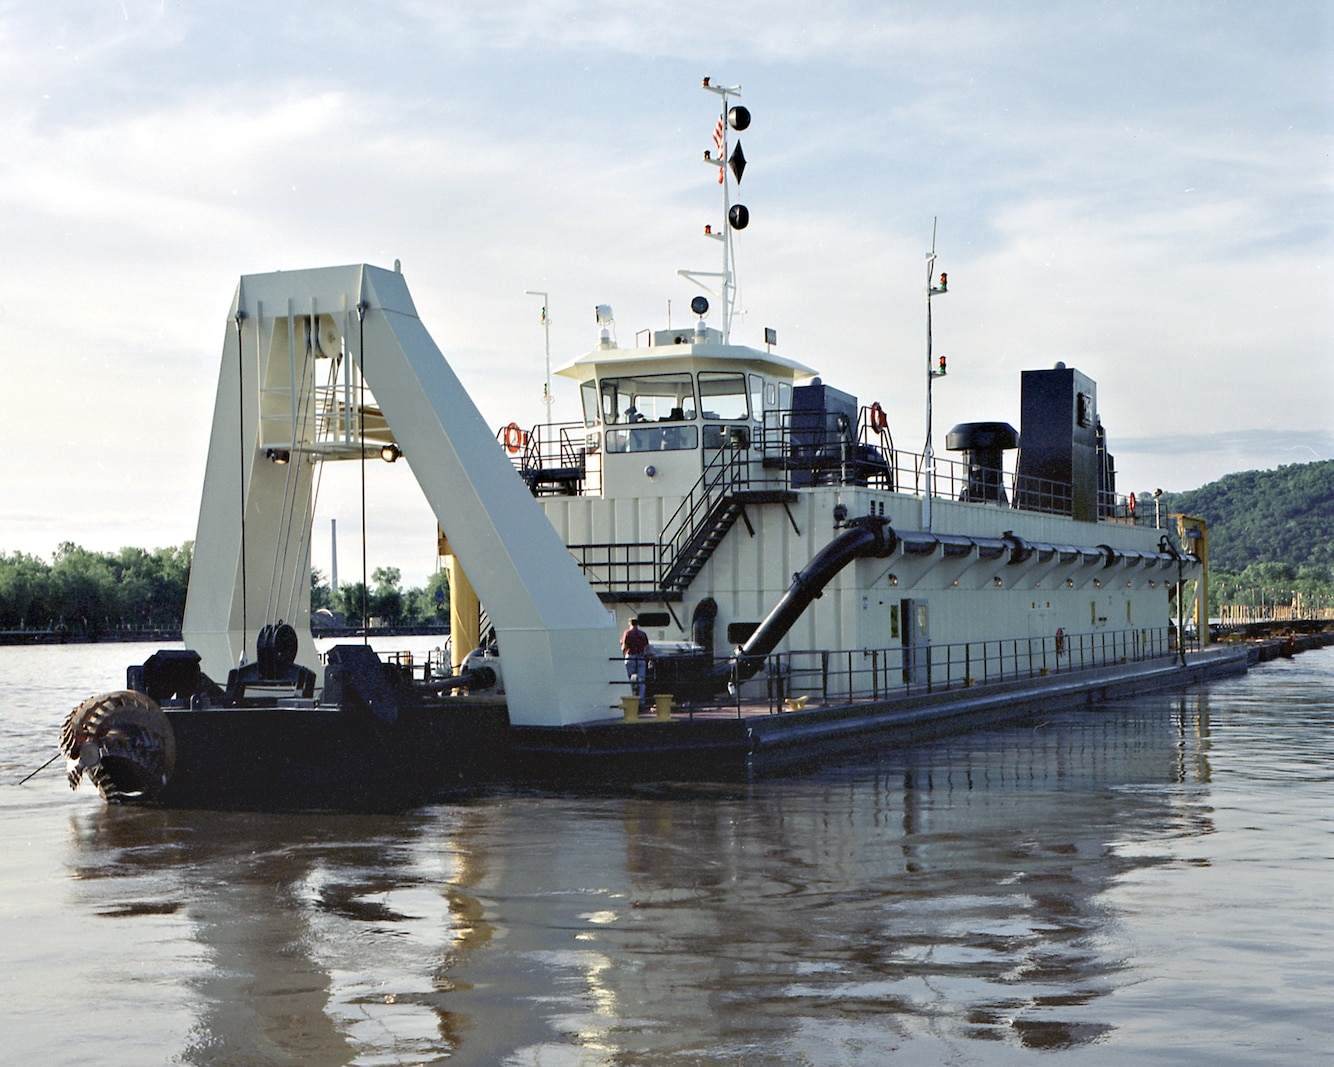 The Dredge Goetz, owned by the U.S. Army Corps of Engineers St. Paul District, is 225 feet long by 39 feet wide and eight feet deep, with a five-foot draft.